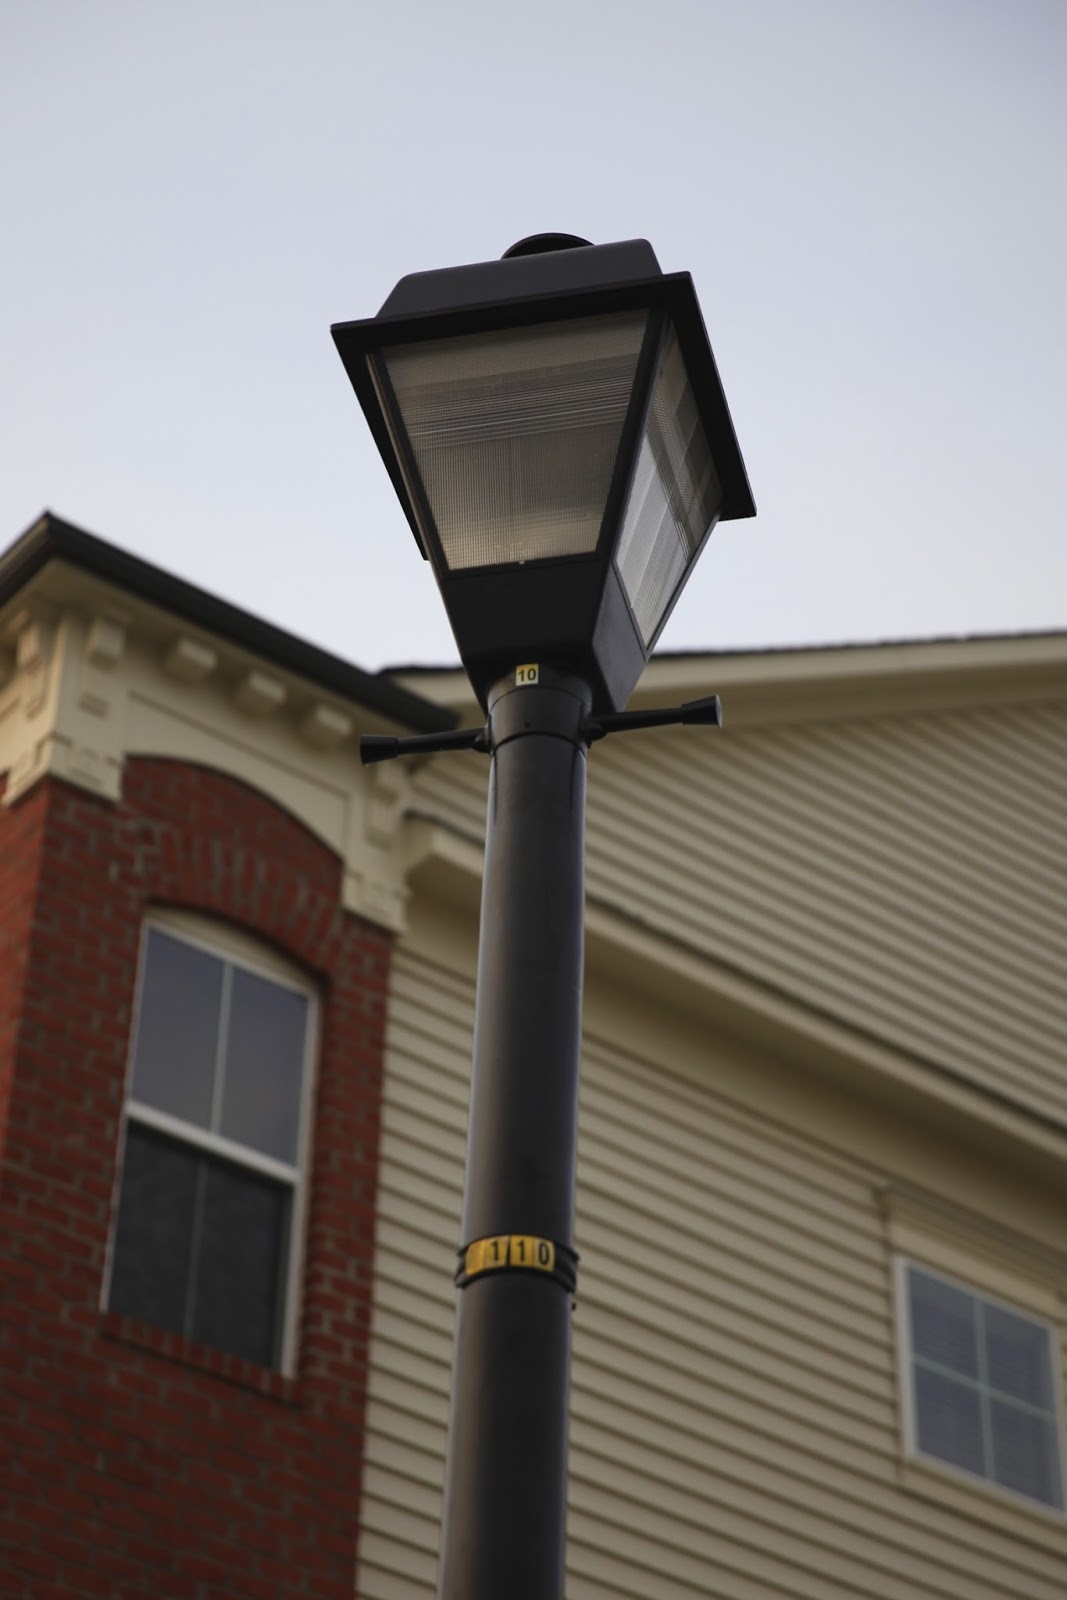 Report Street Light Out